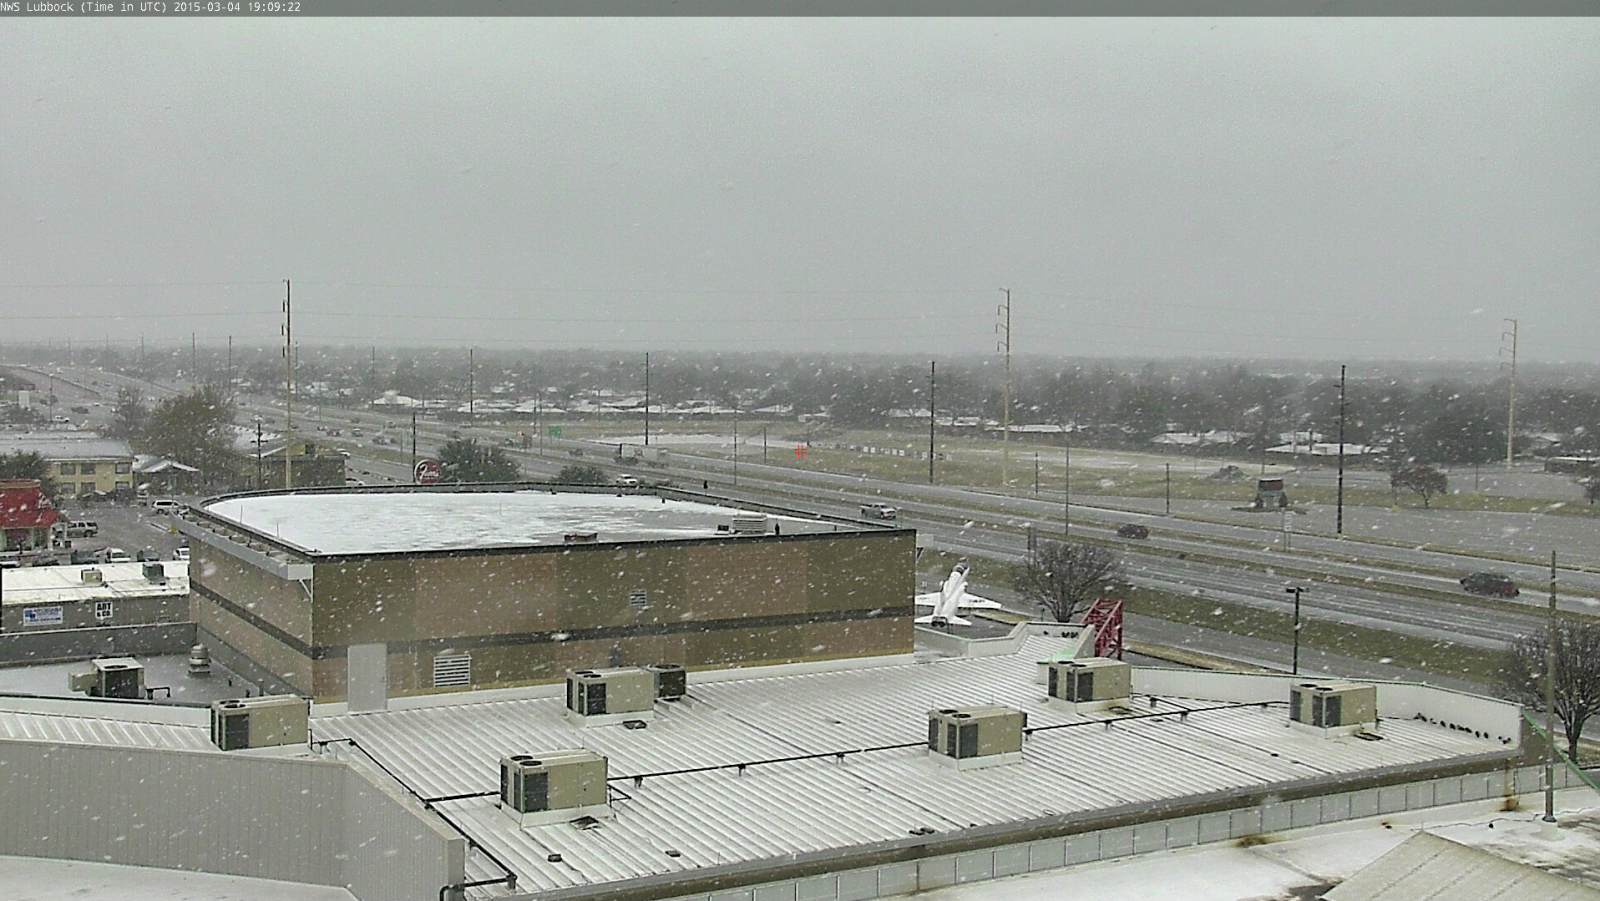 Freezing rain and sleet transitioning to snow in south Lubbock shortly after 1 pm on March 4th.